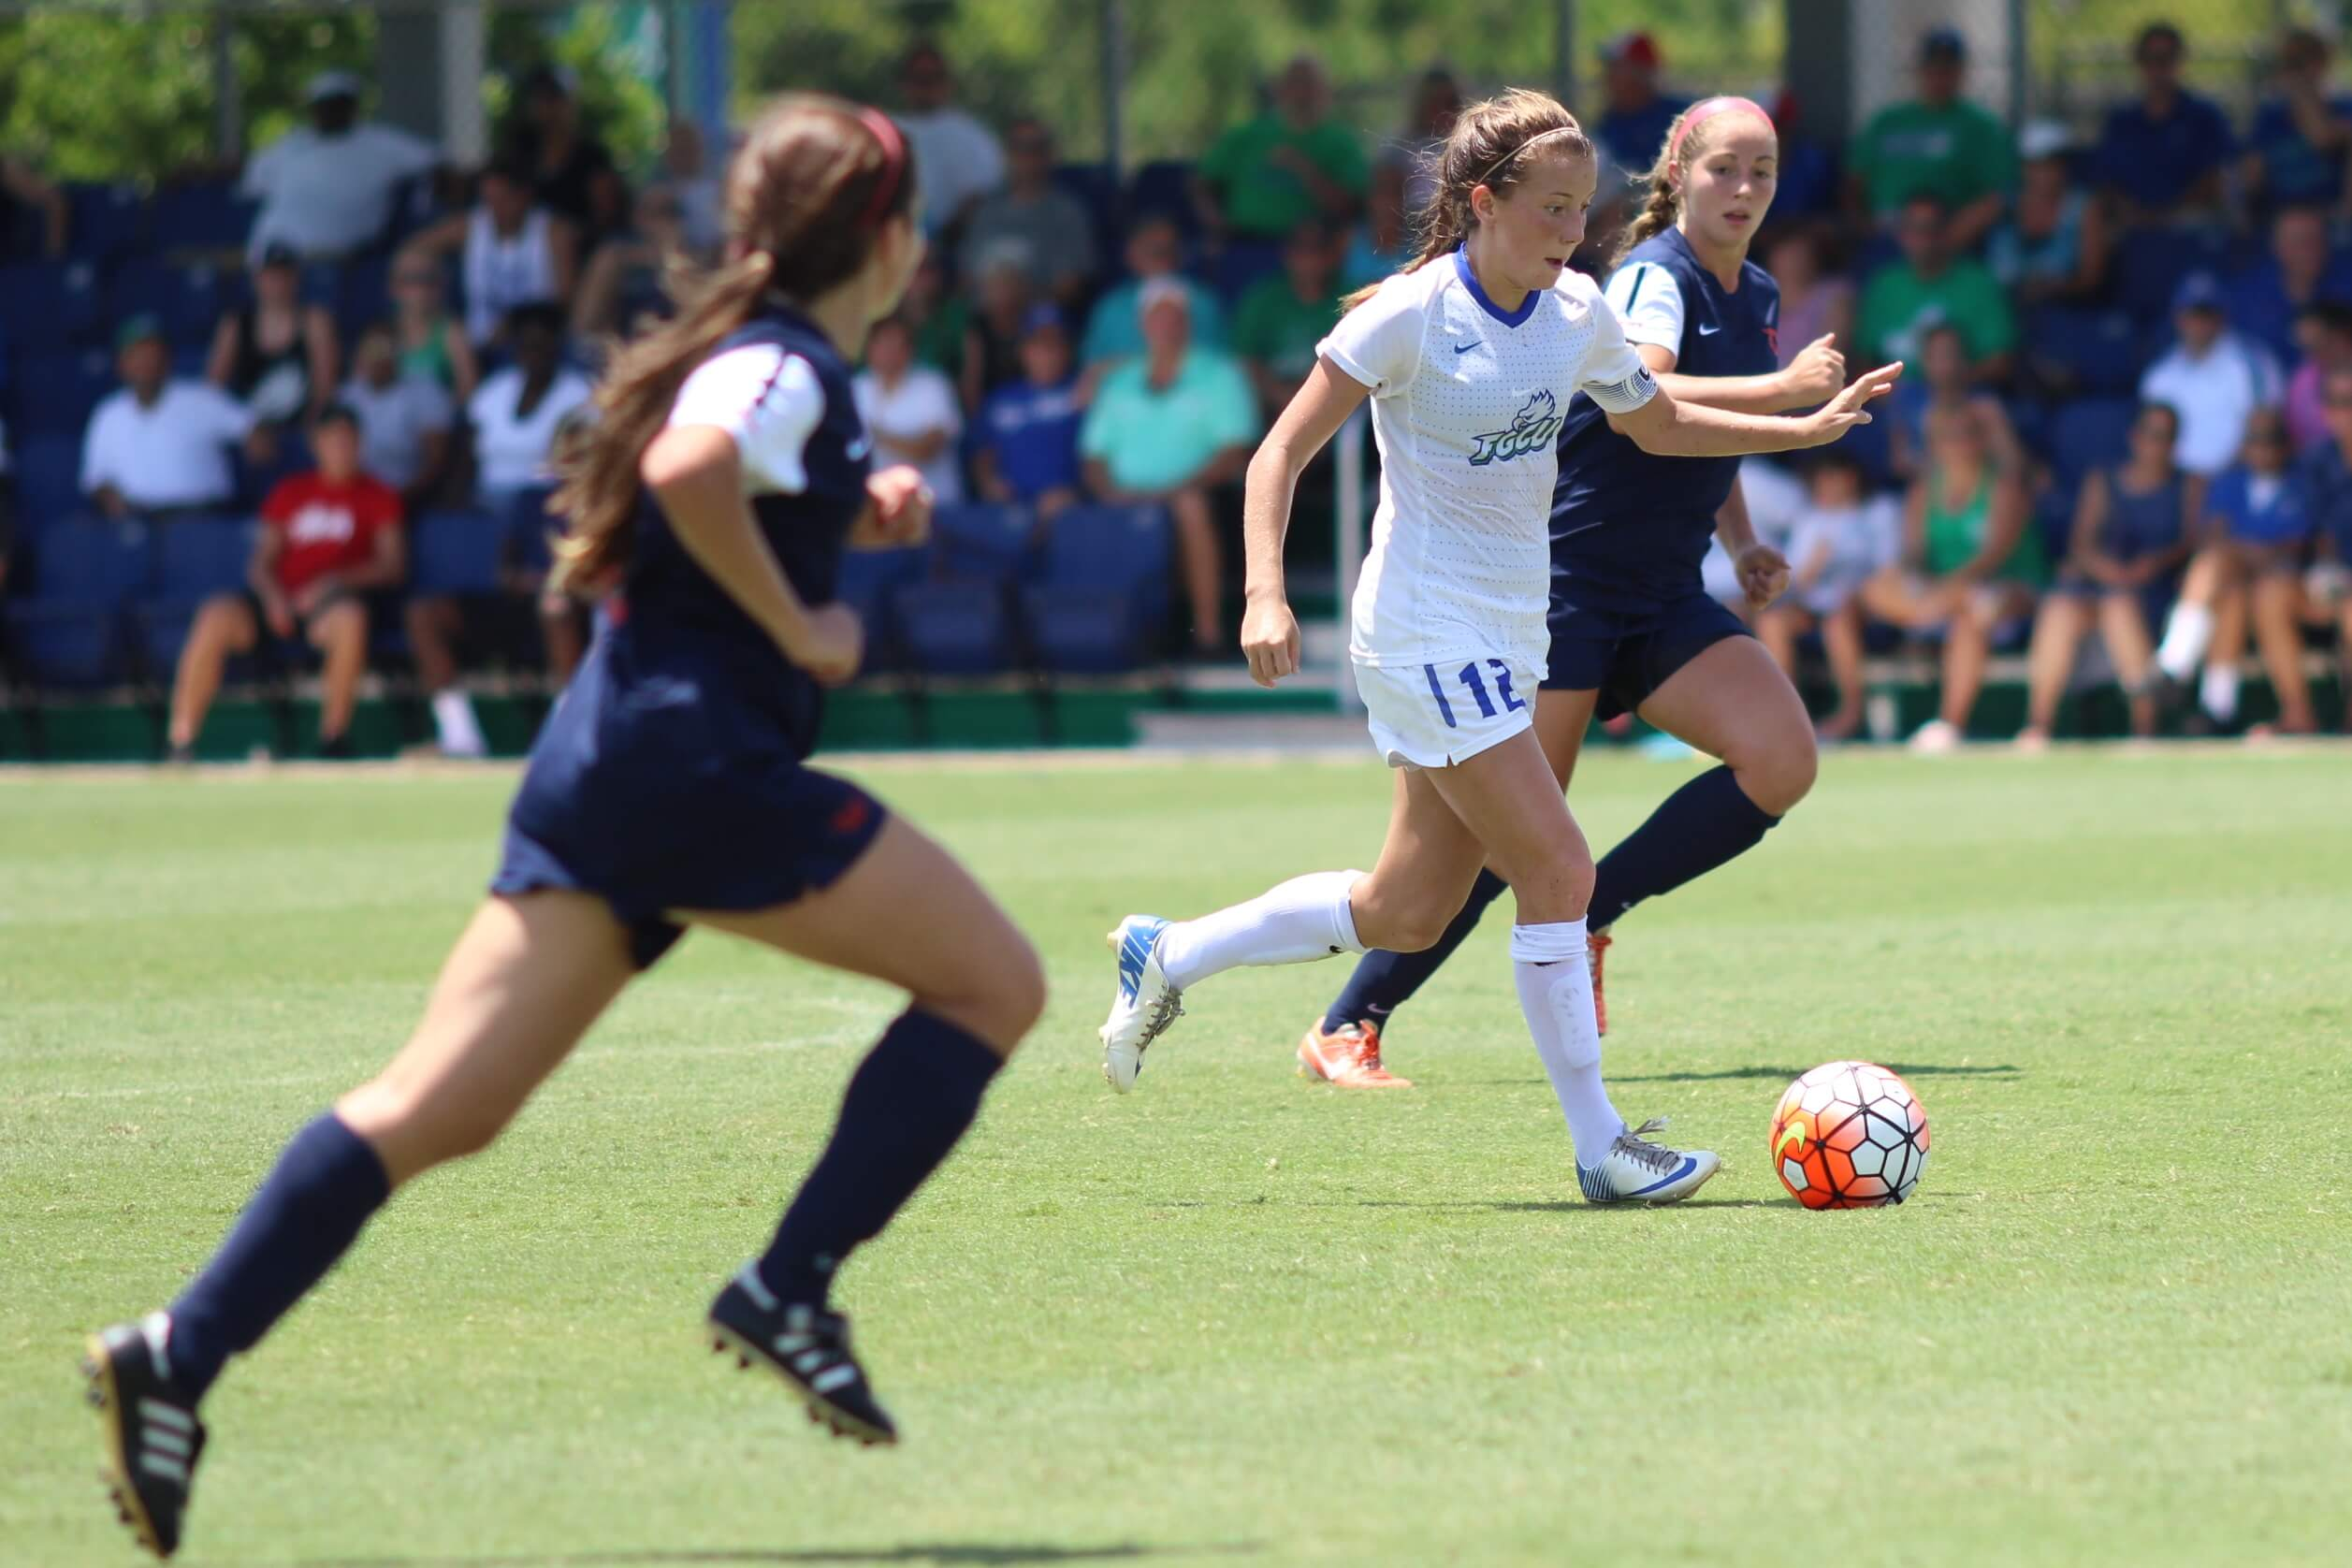 FGCU women's soccer drops first games of the season